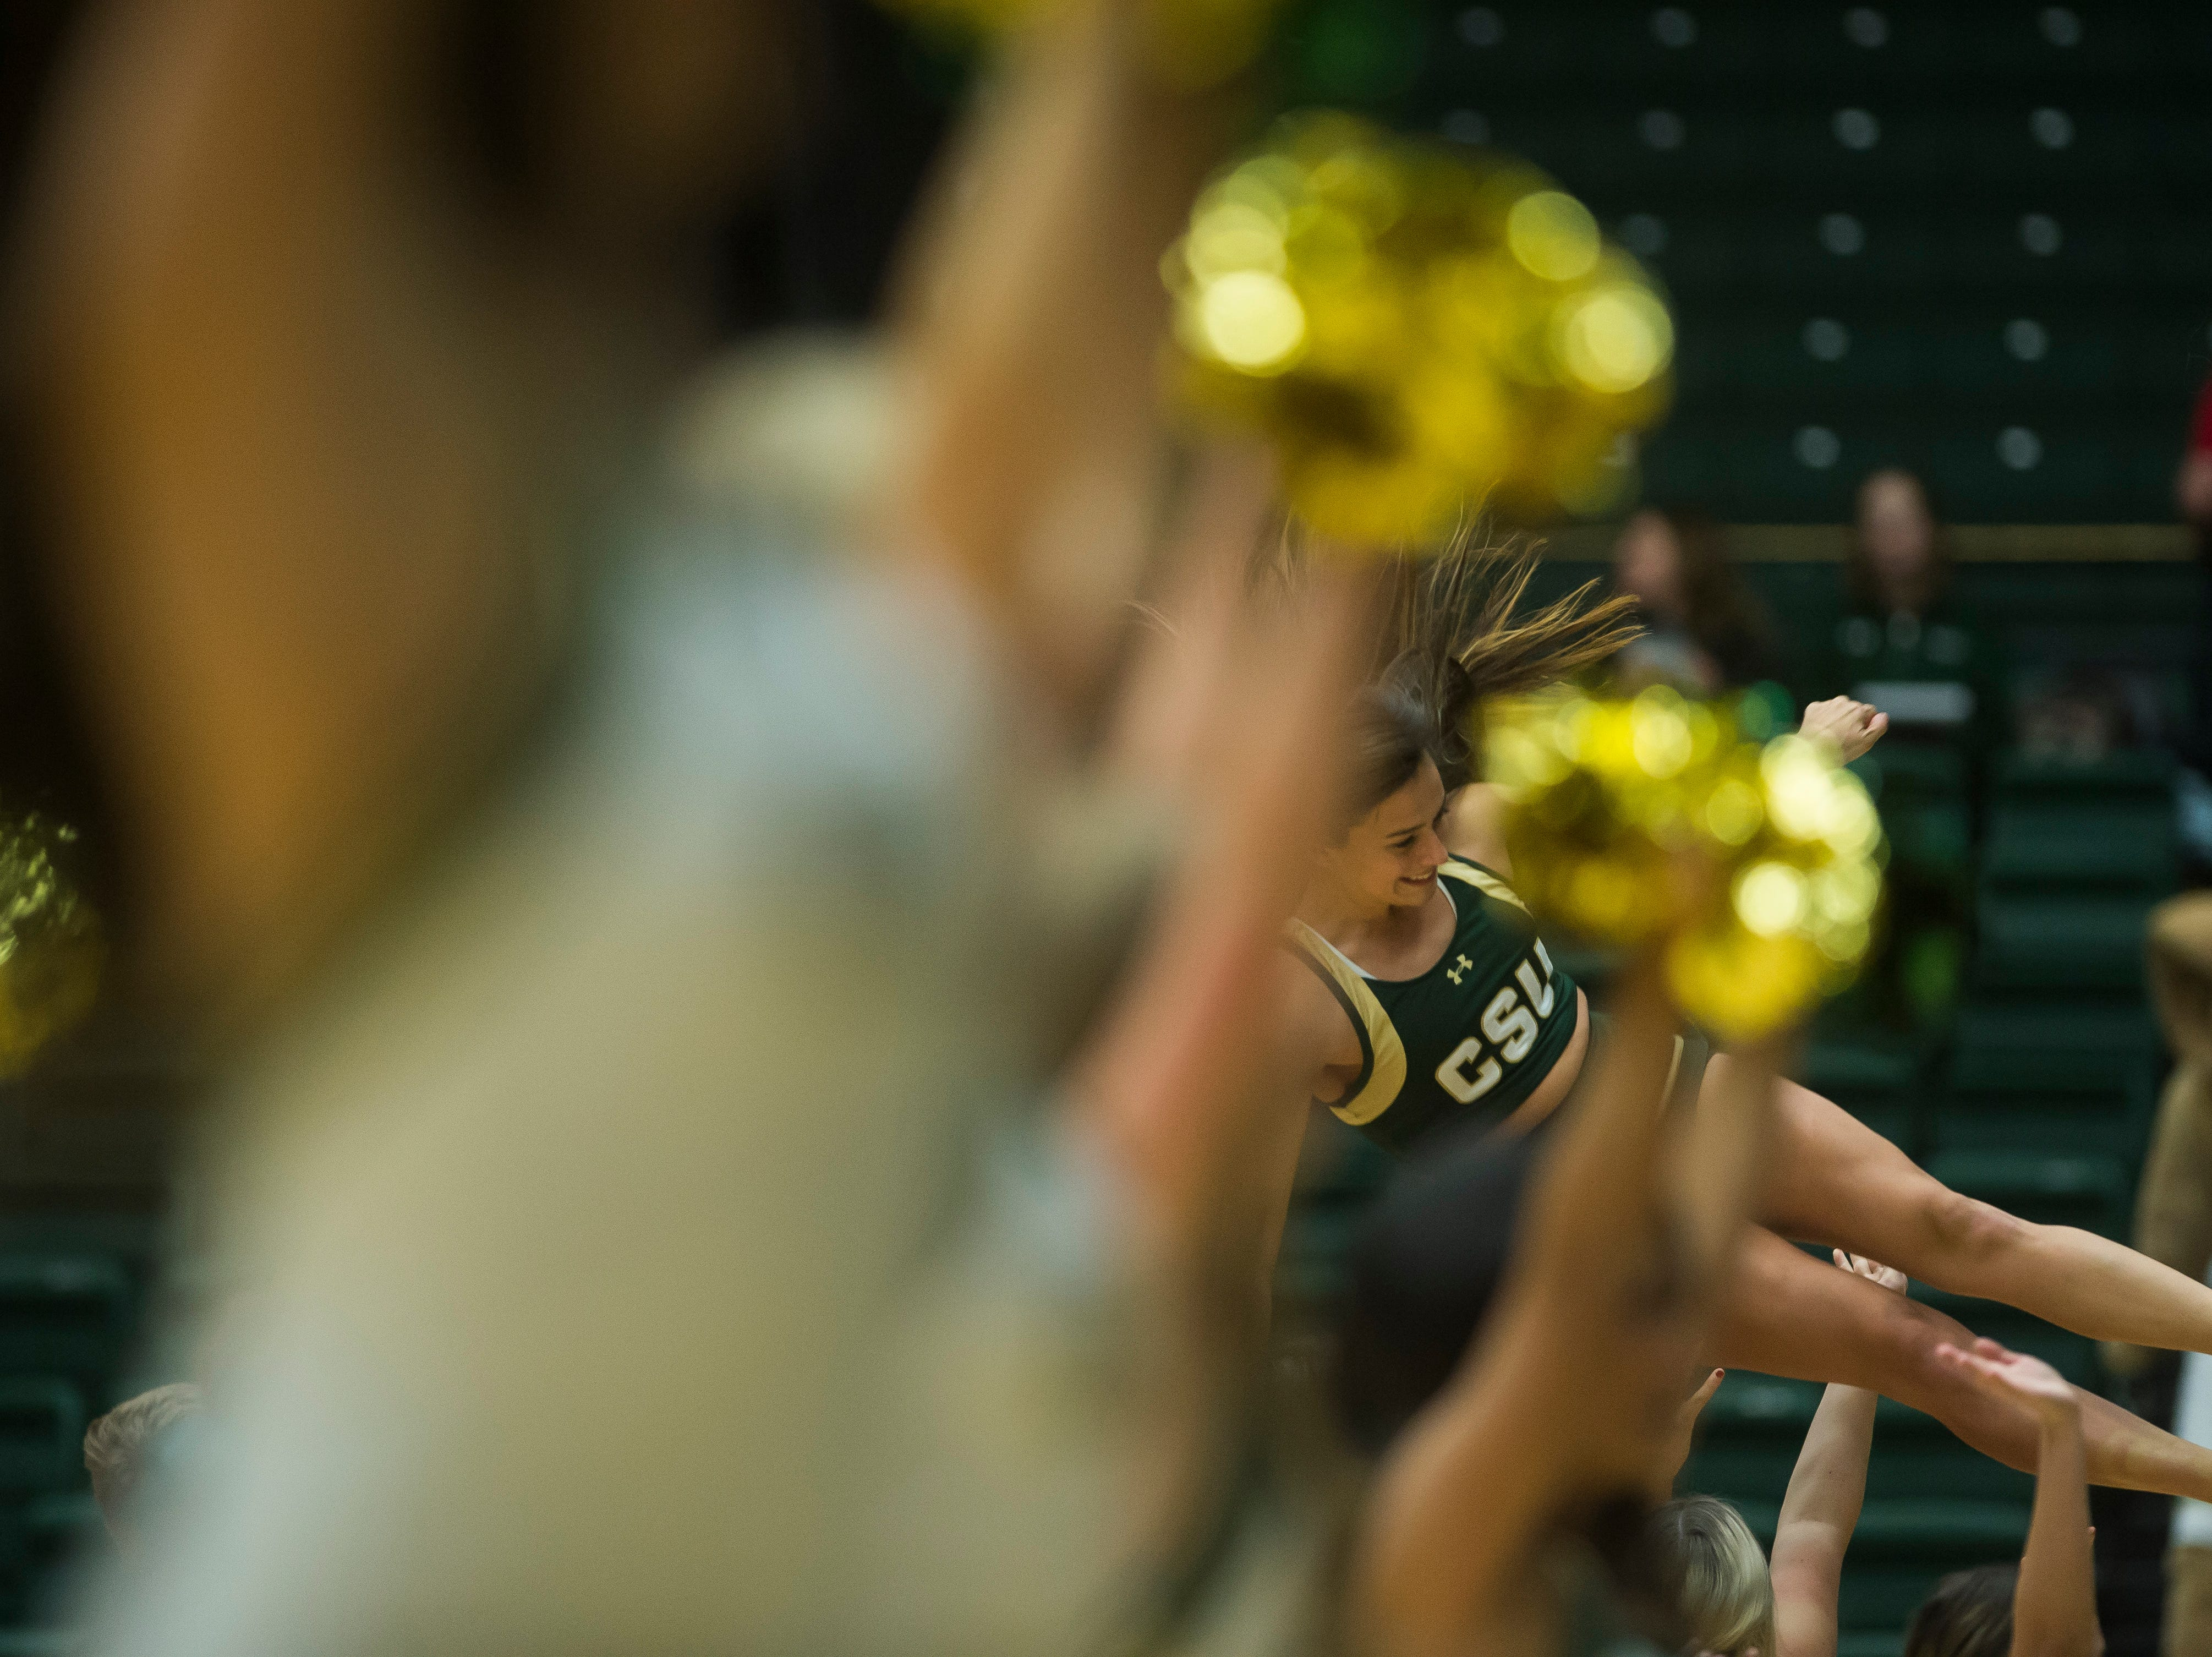 Colorado State University cheerleaders perform during a timeout in a game against Colorado Christian University on Wednesday, Nov. 7, 2018, at Moby Arena in Fort Collins, Colo.